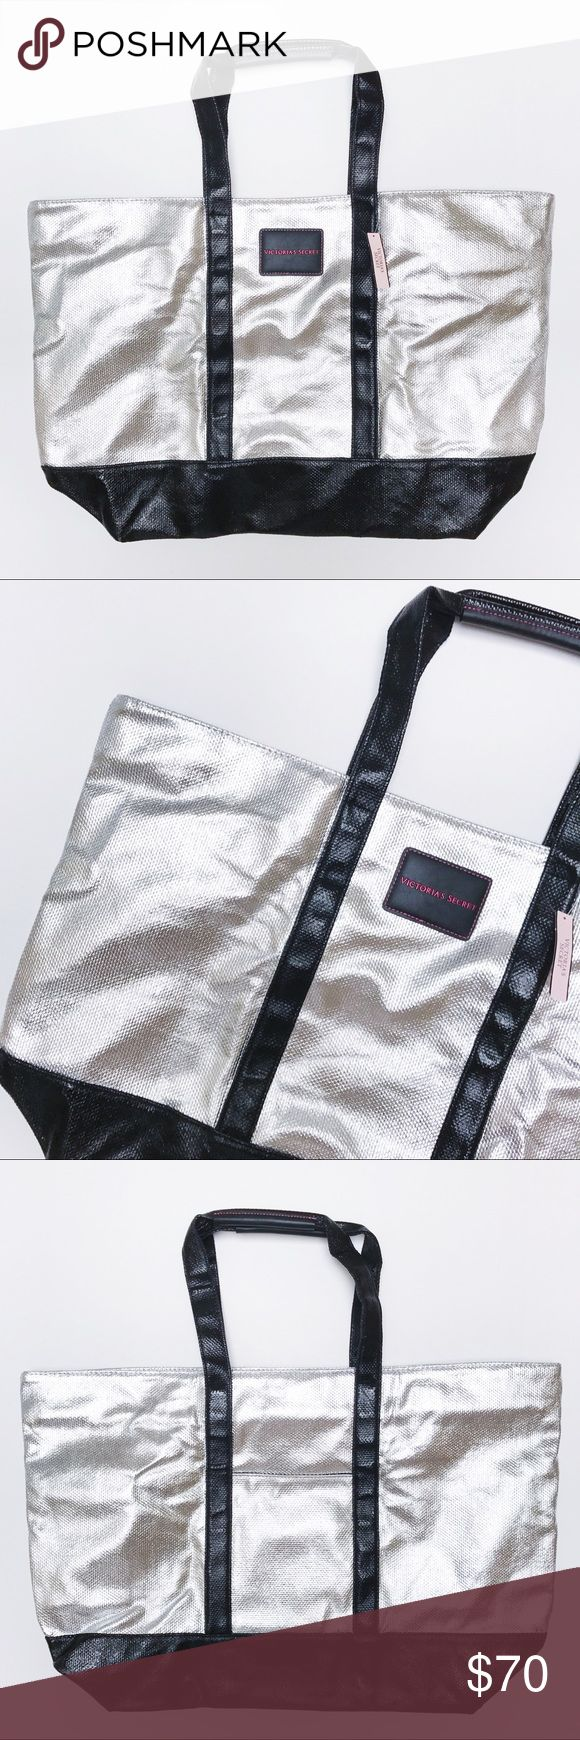 Victoria's Secret - Silver Tote Bag Victoria's Secret silver tote bag with black strap detail. Logo at front. Slip pocket at back. New with tags. 💟 Offers welcome. 🙅🏻 No trades. 🎀 Bundle for discount. Victoria's Secret Bags Totes